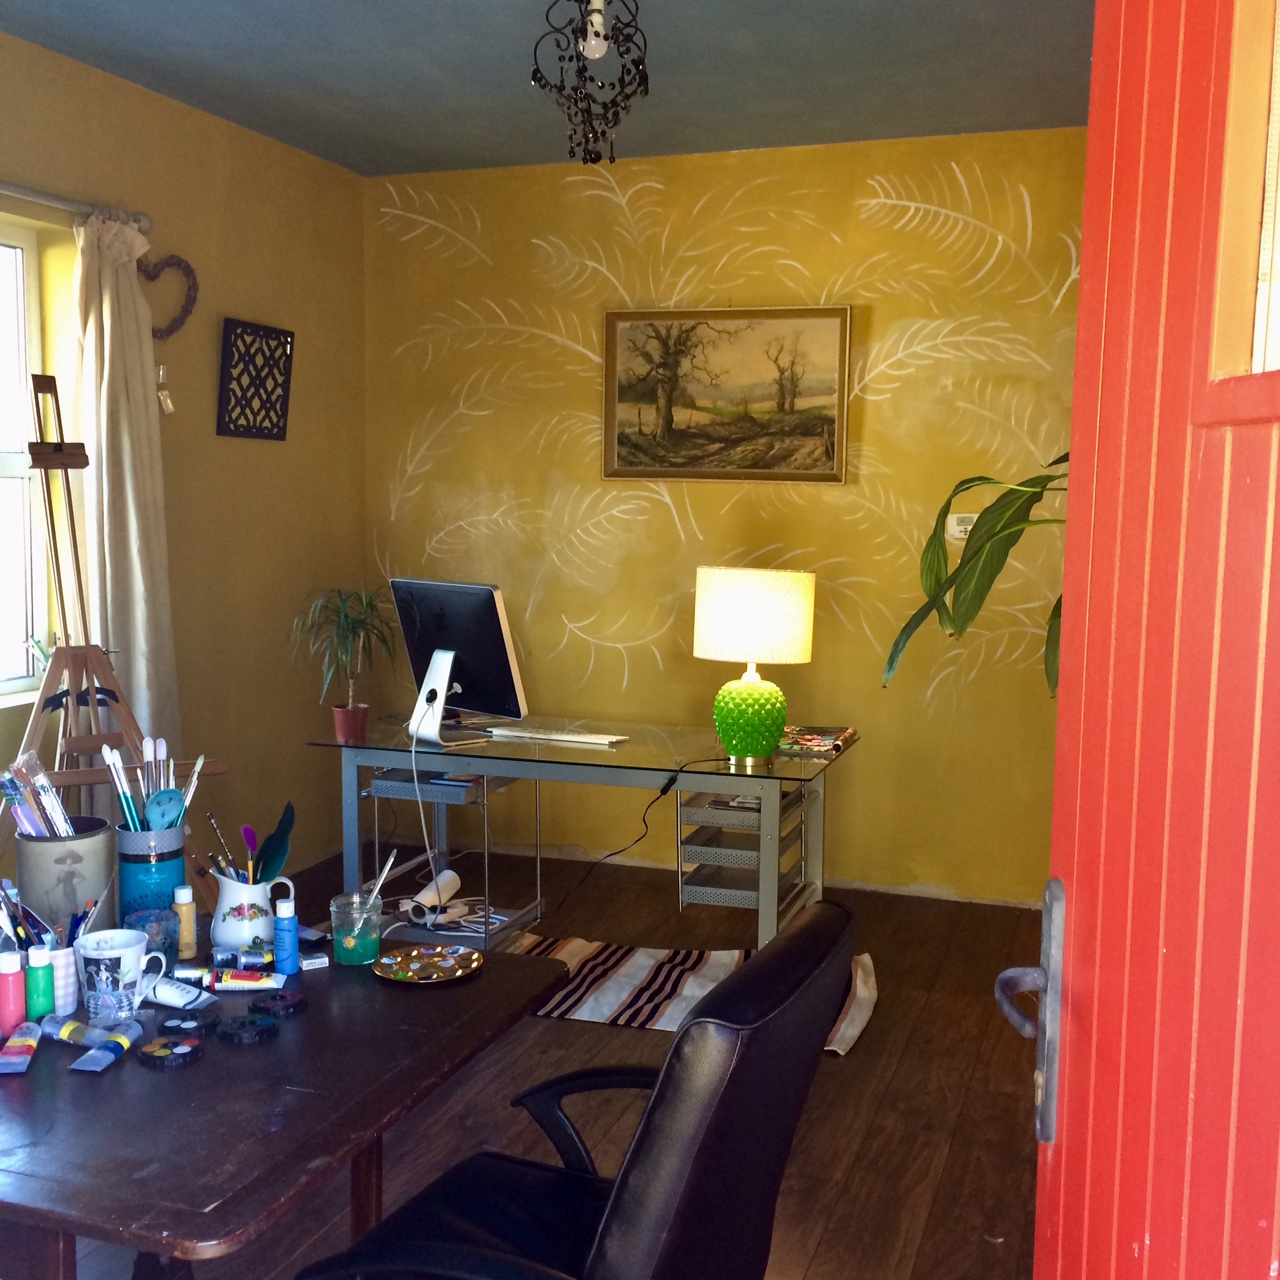 Home Art Studio Reveal…